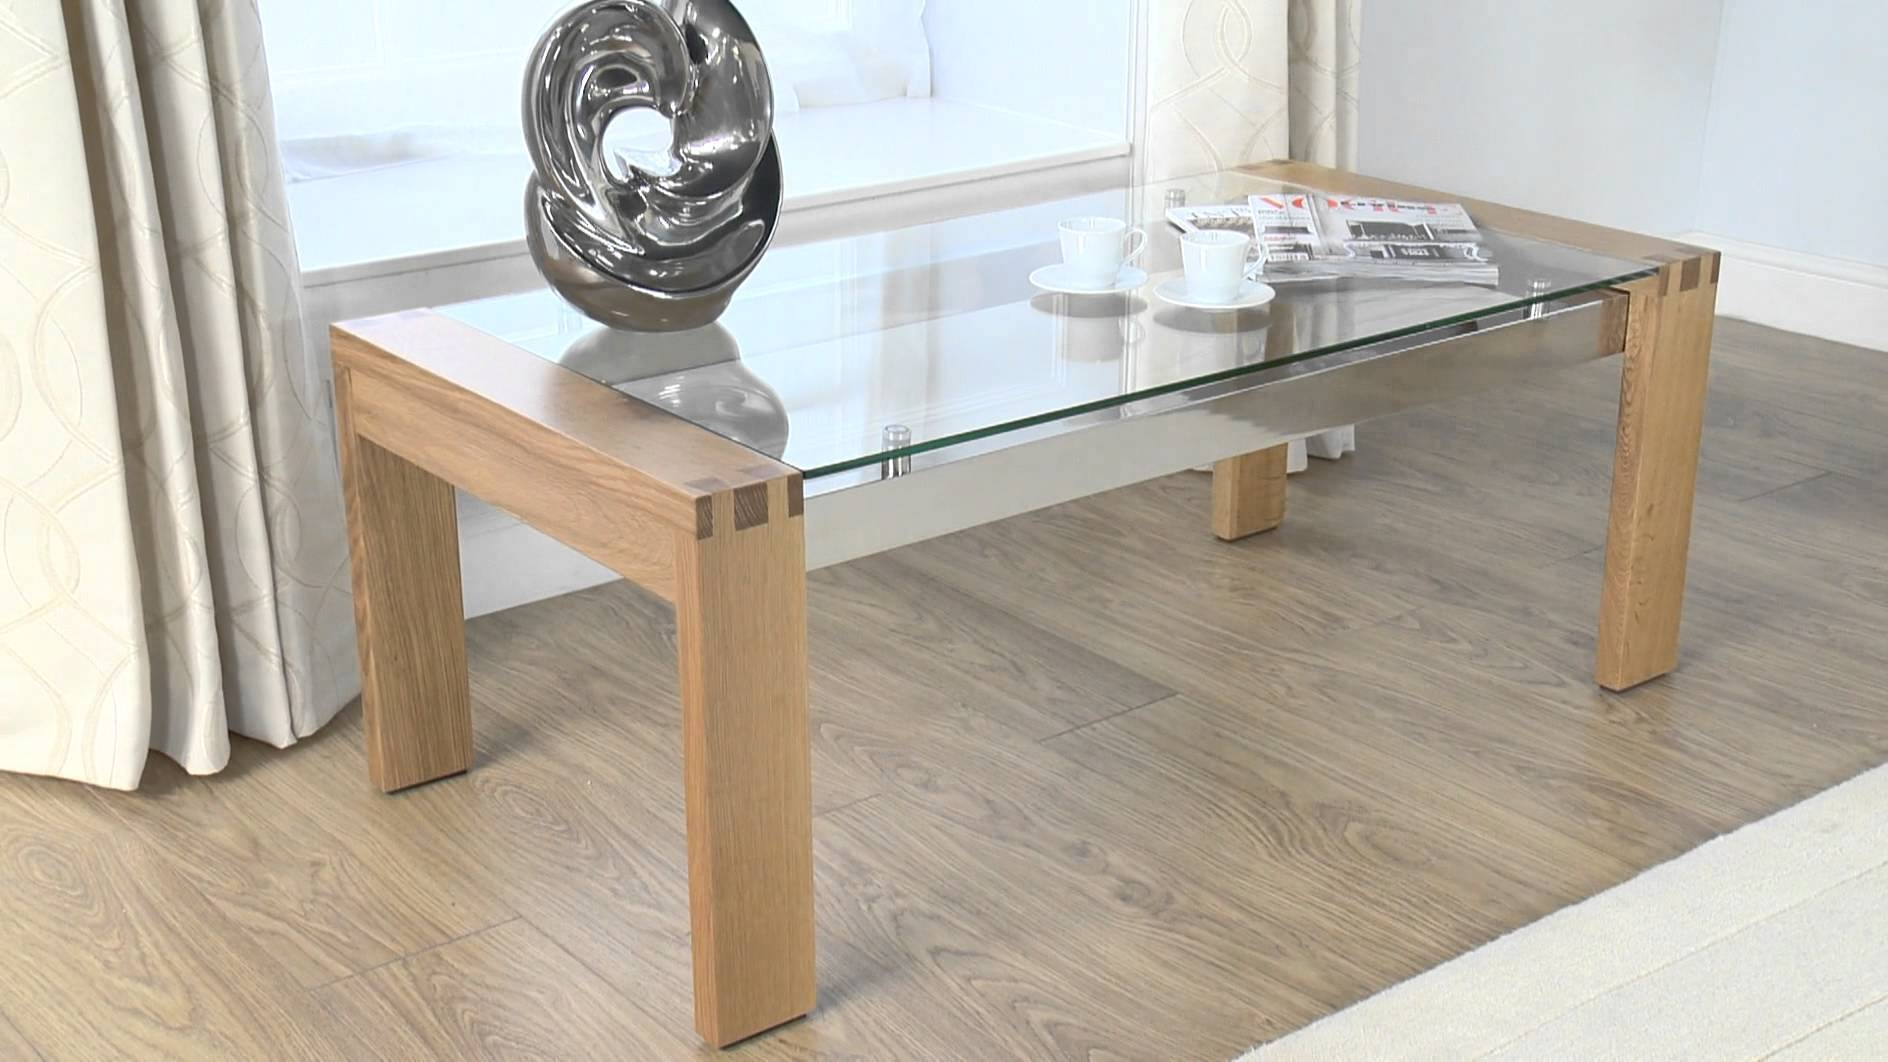 Glass Coffee Table: Cannes Glass/oak Coffee Table - Youtube throughout Glass And Oak Coffee Tables (Image 19 of 30)